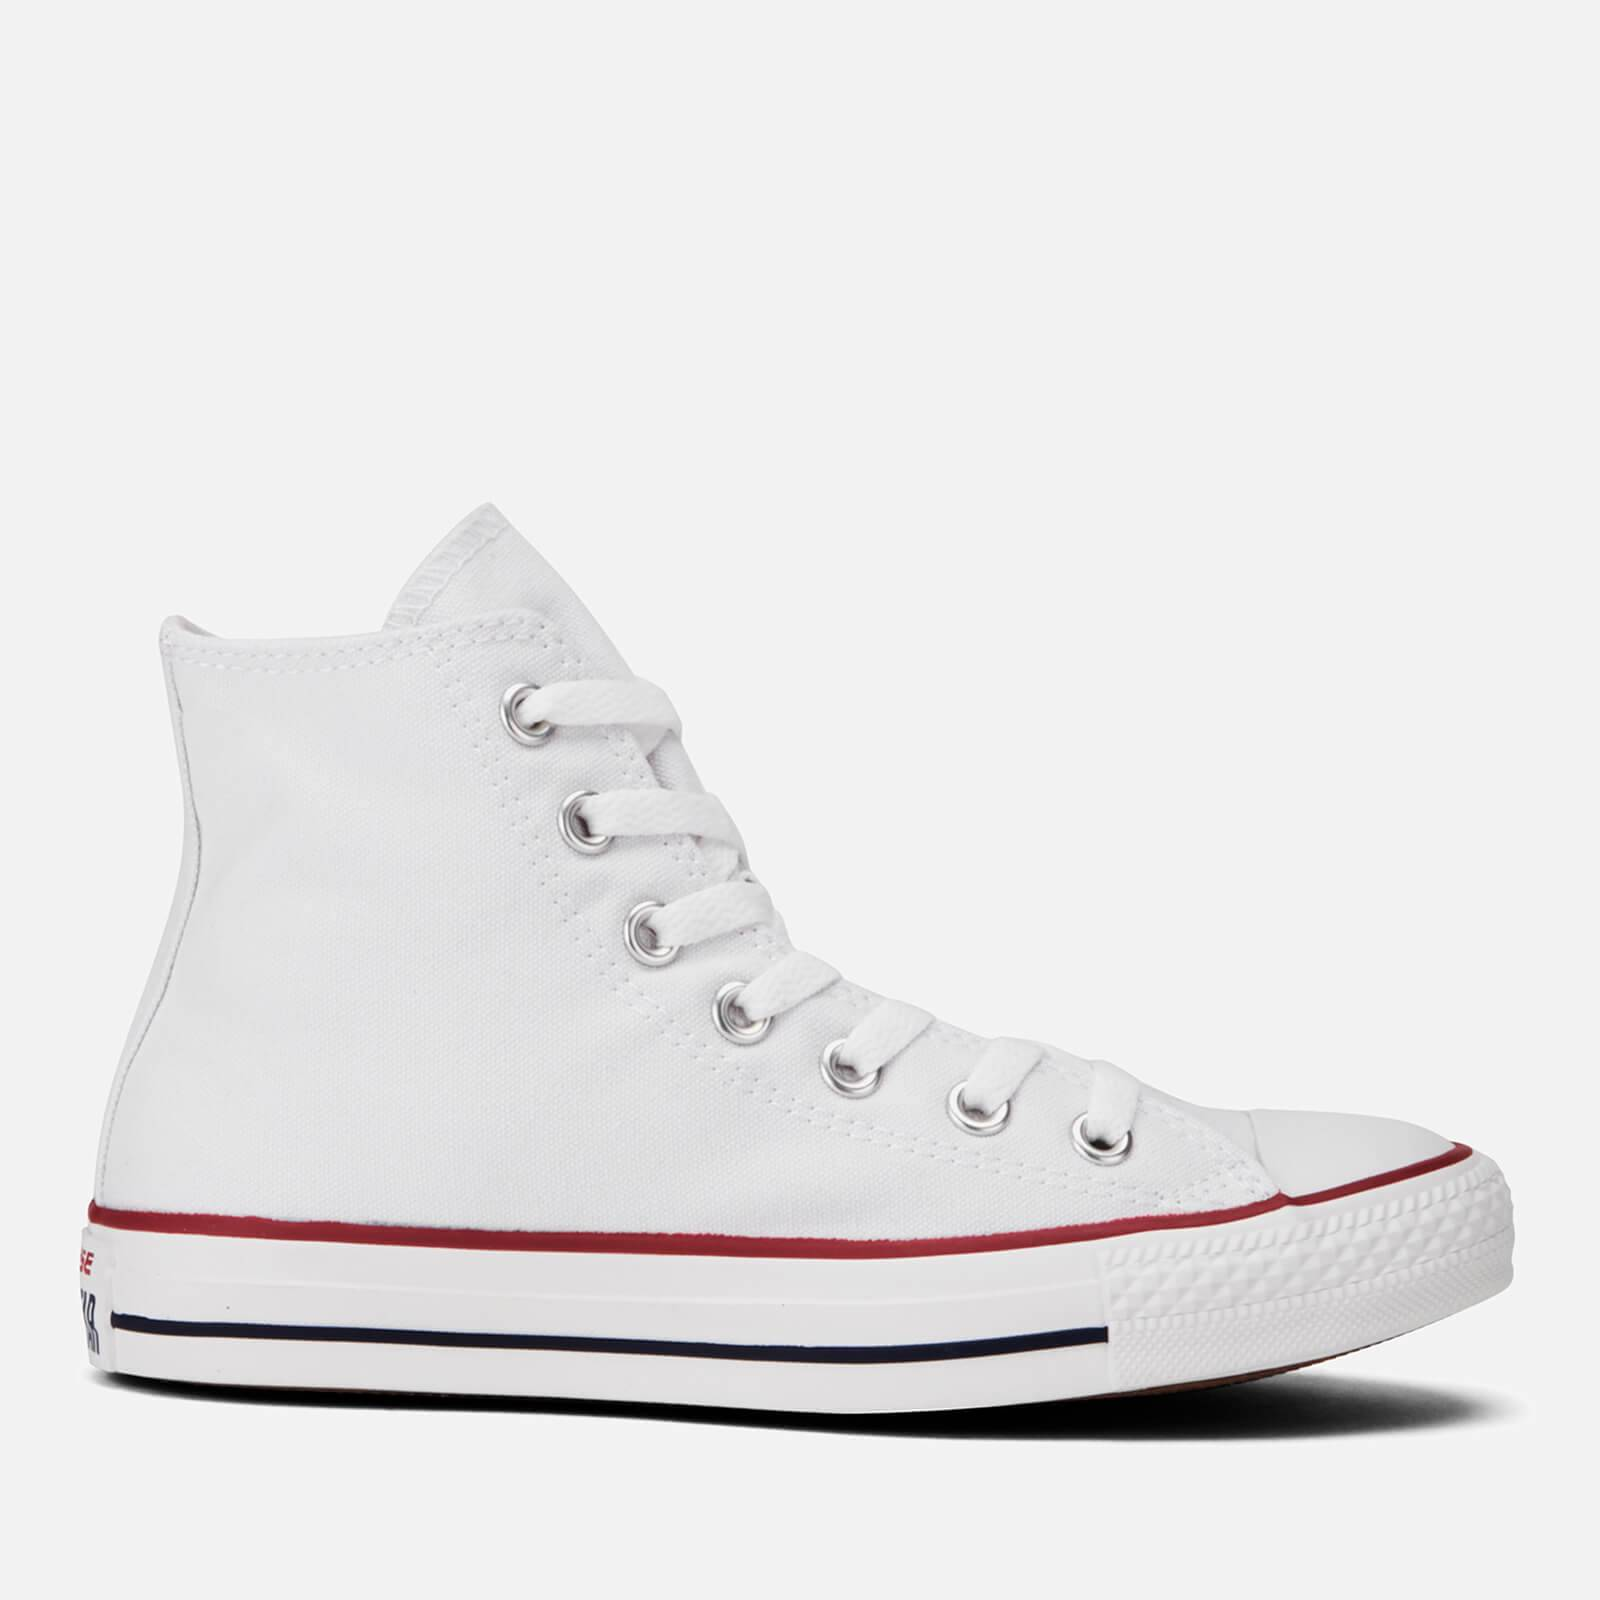 Converse Chuck Taylor All Star Canvas Hi-Top Trainers - Optical White - UK 11